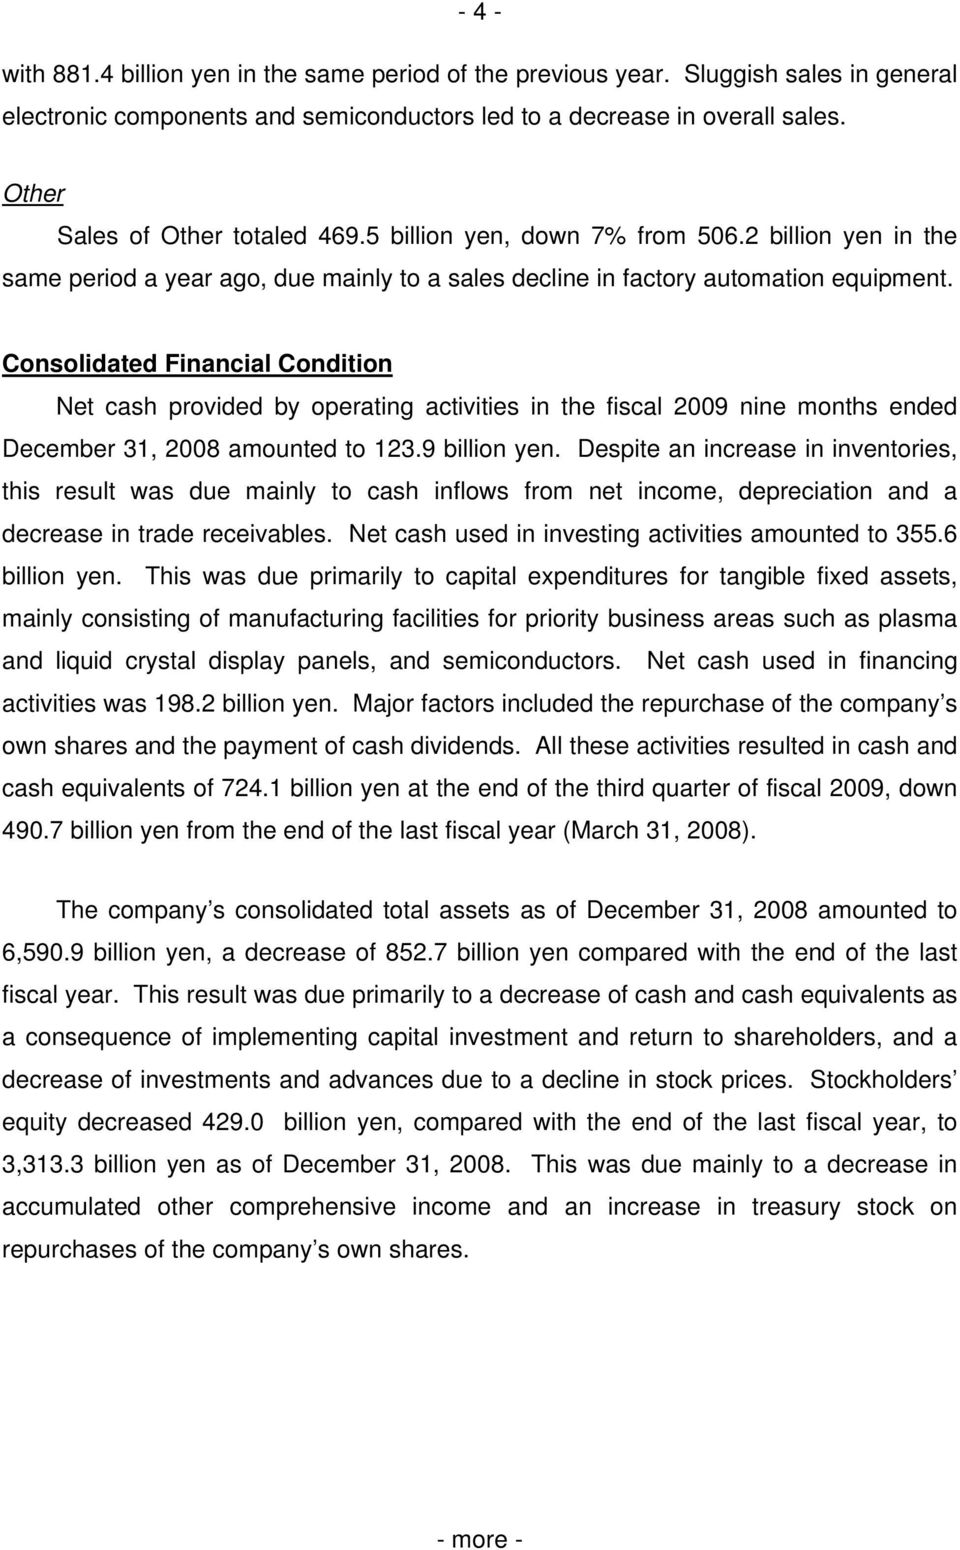 Consolidated Financial Condition Net cash provided by operating activities in the fiscal 2009 nine months ended December 31, 2008 amounted to 123.9 billion yen.